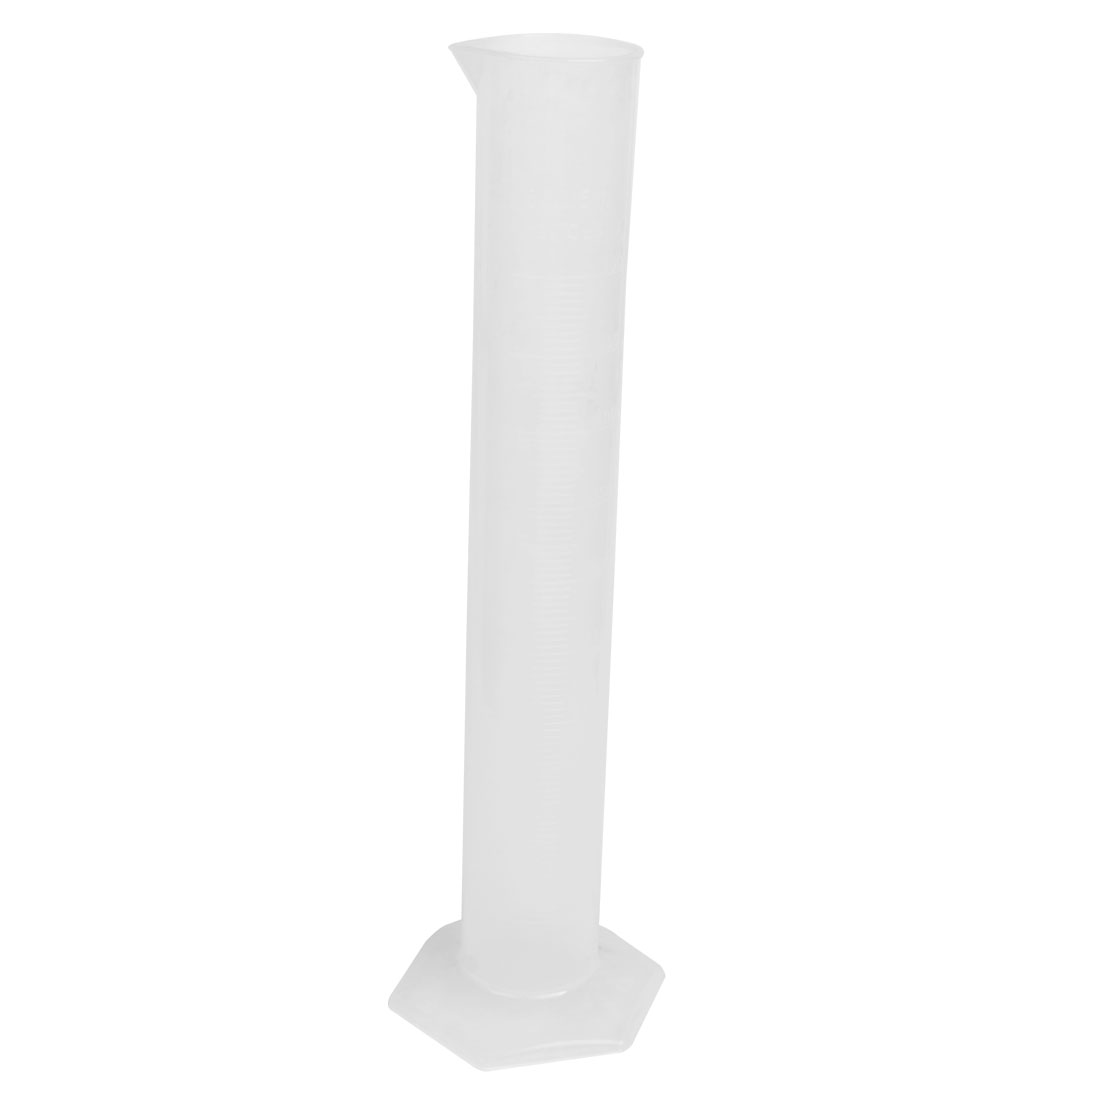 Lab Measurements Clear White Plastic Hex Base Graduated Cylinder 500mL